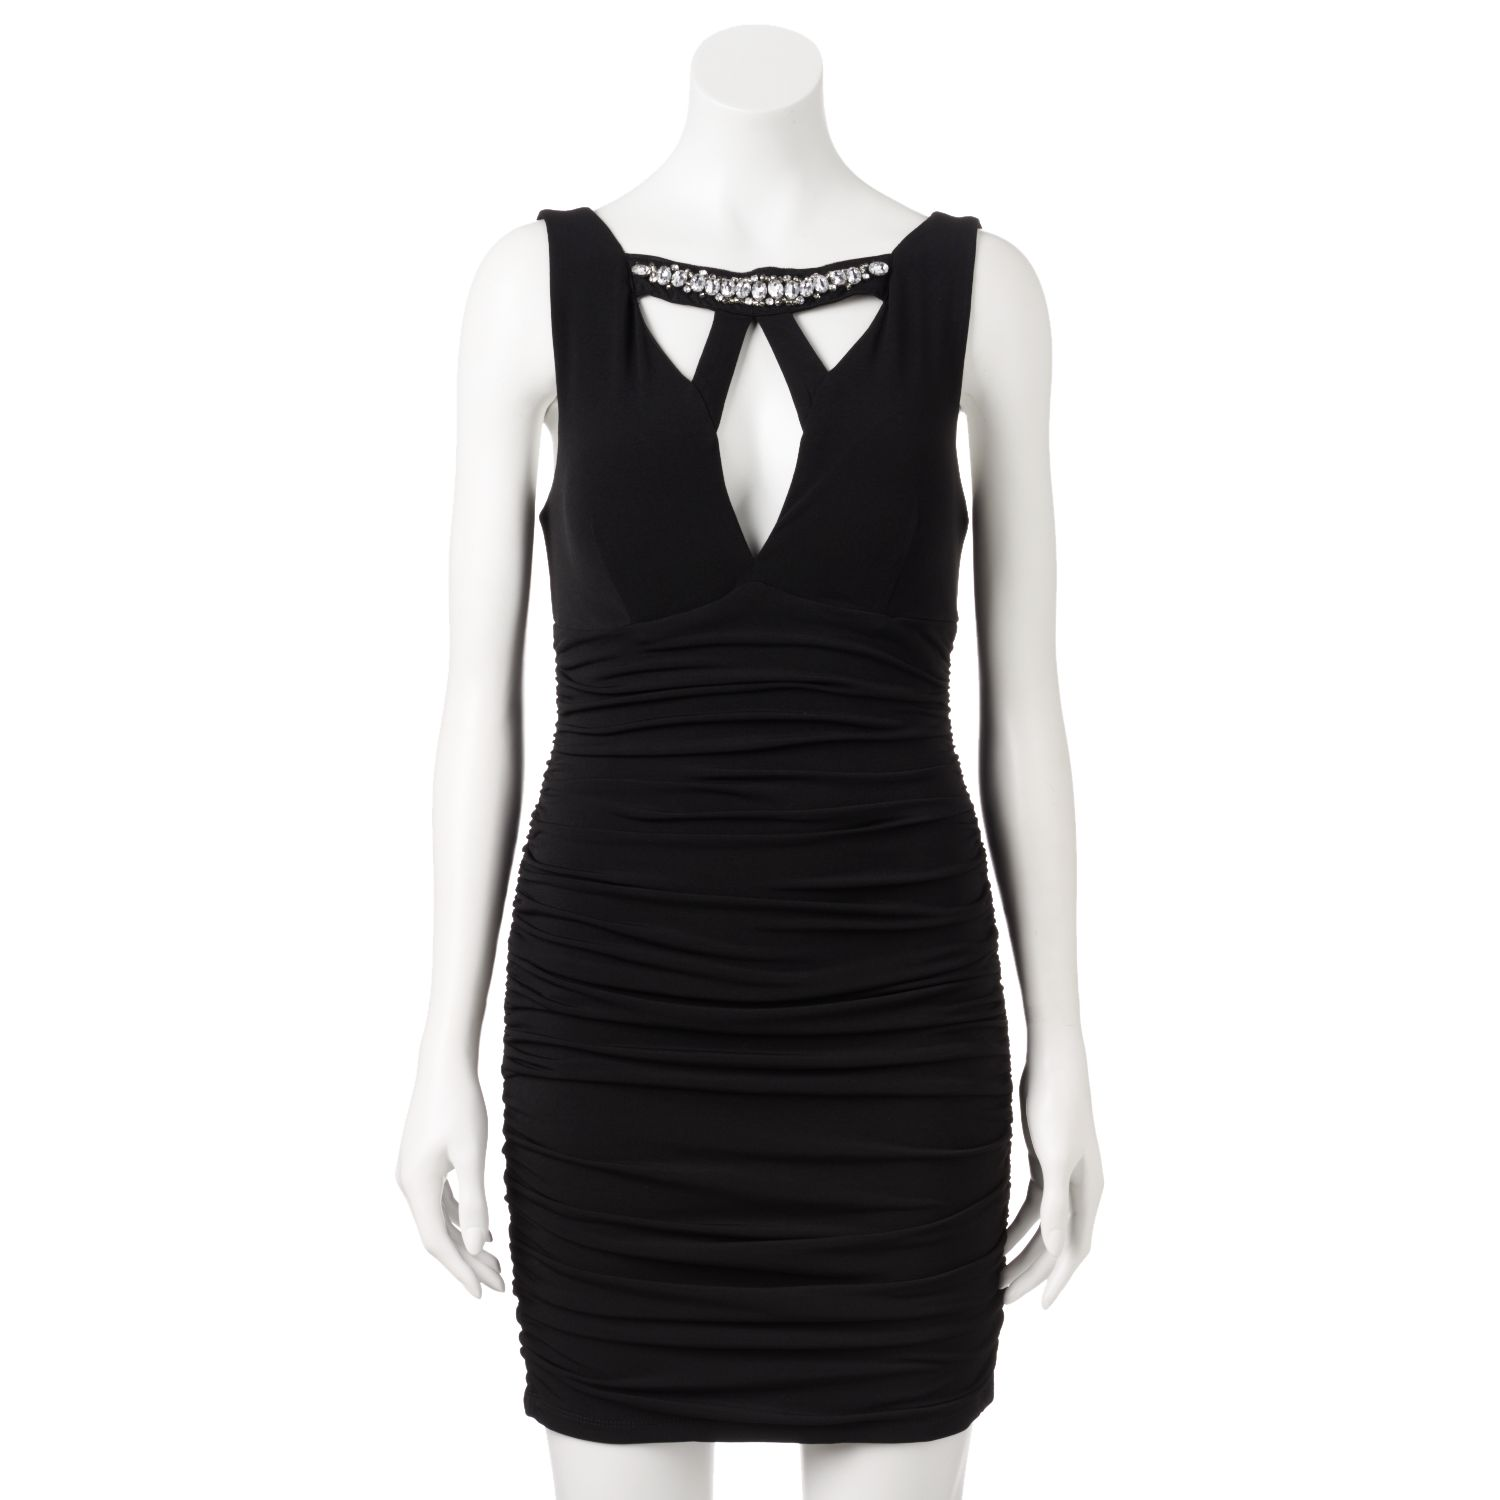 68134a530ea LIST PRICE Trixxi Ruched Cage Bodycon Dress - Juniors - pskkeedress